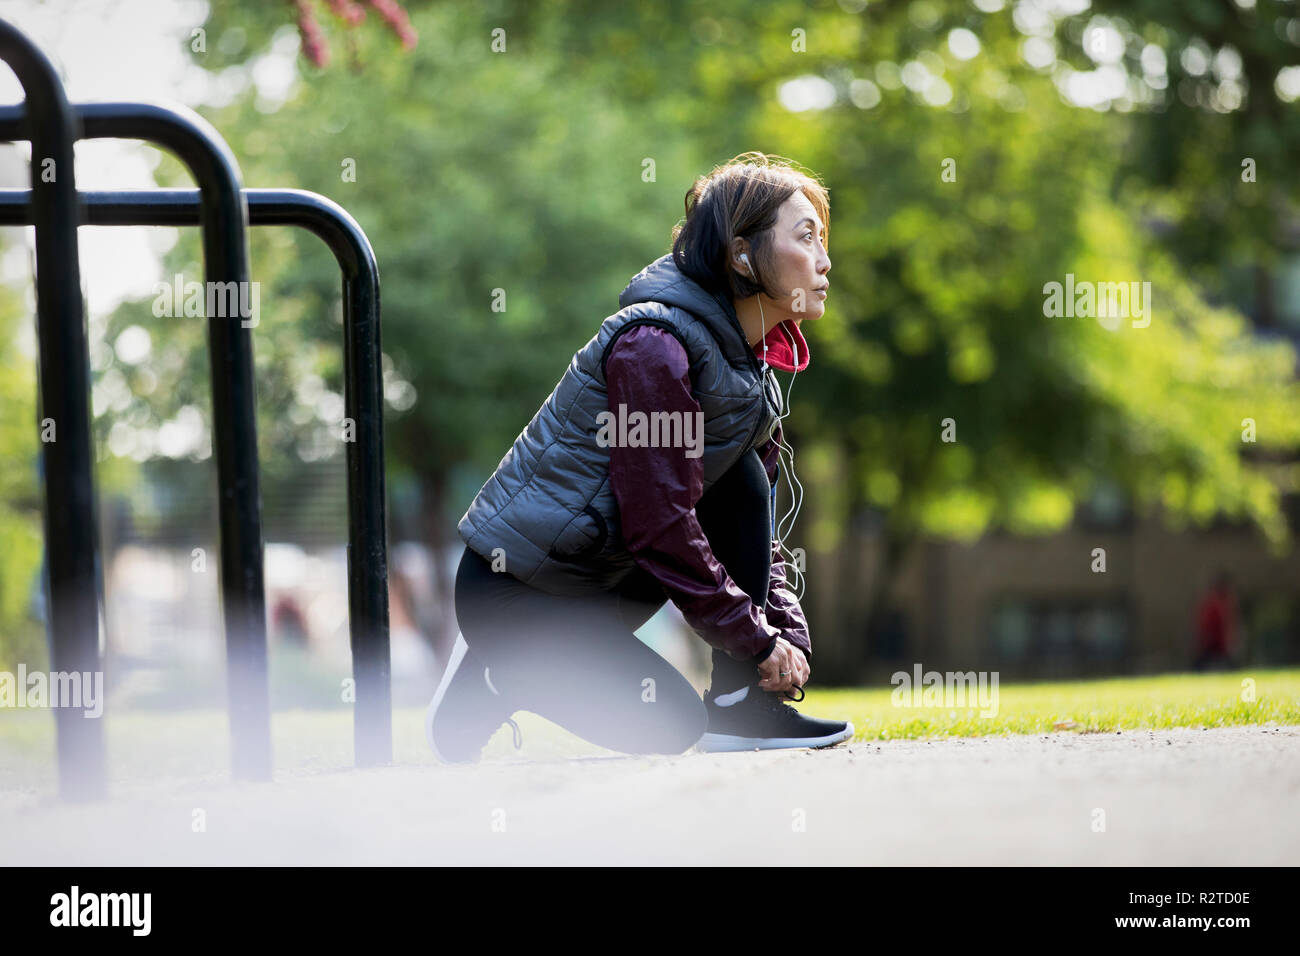 Active senior female runner with headphones tying shoe in park - Stock Image